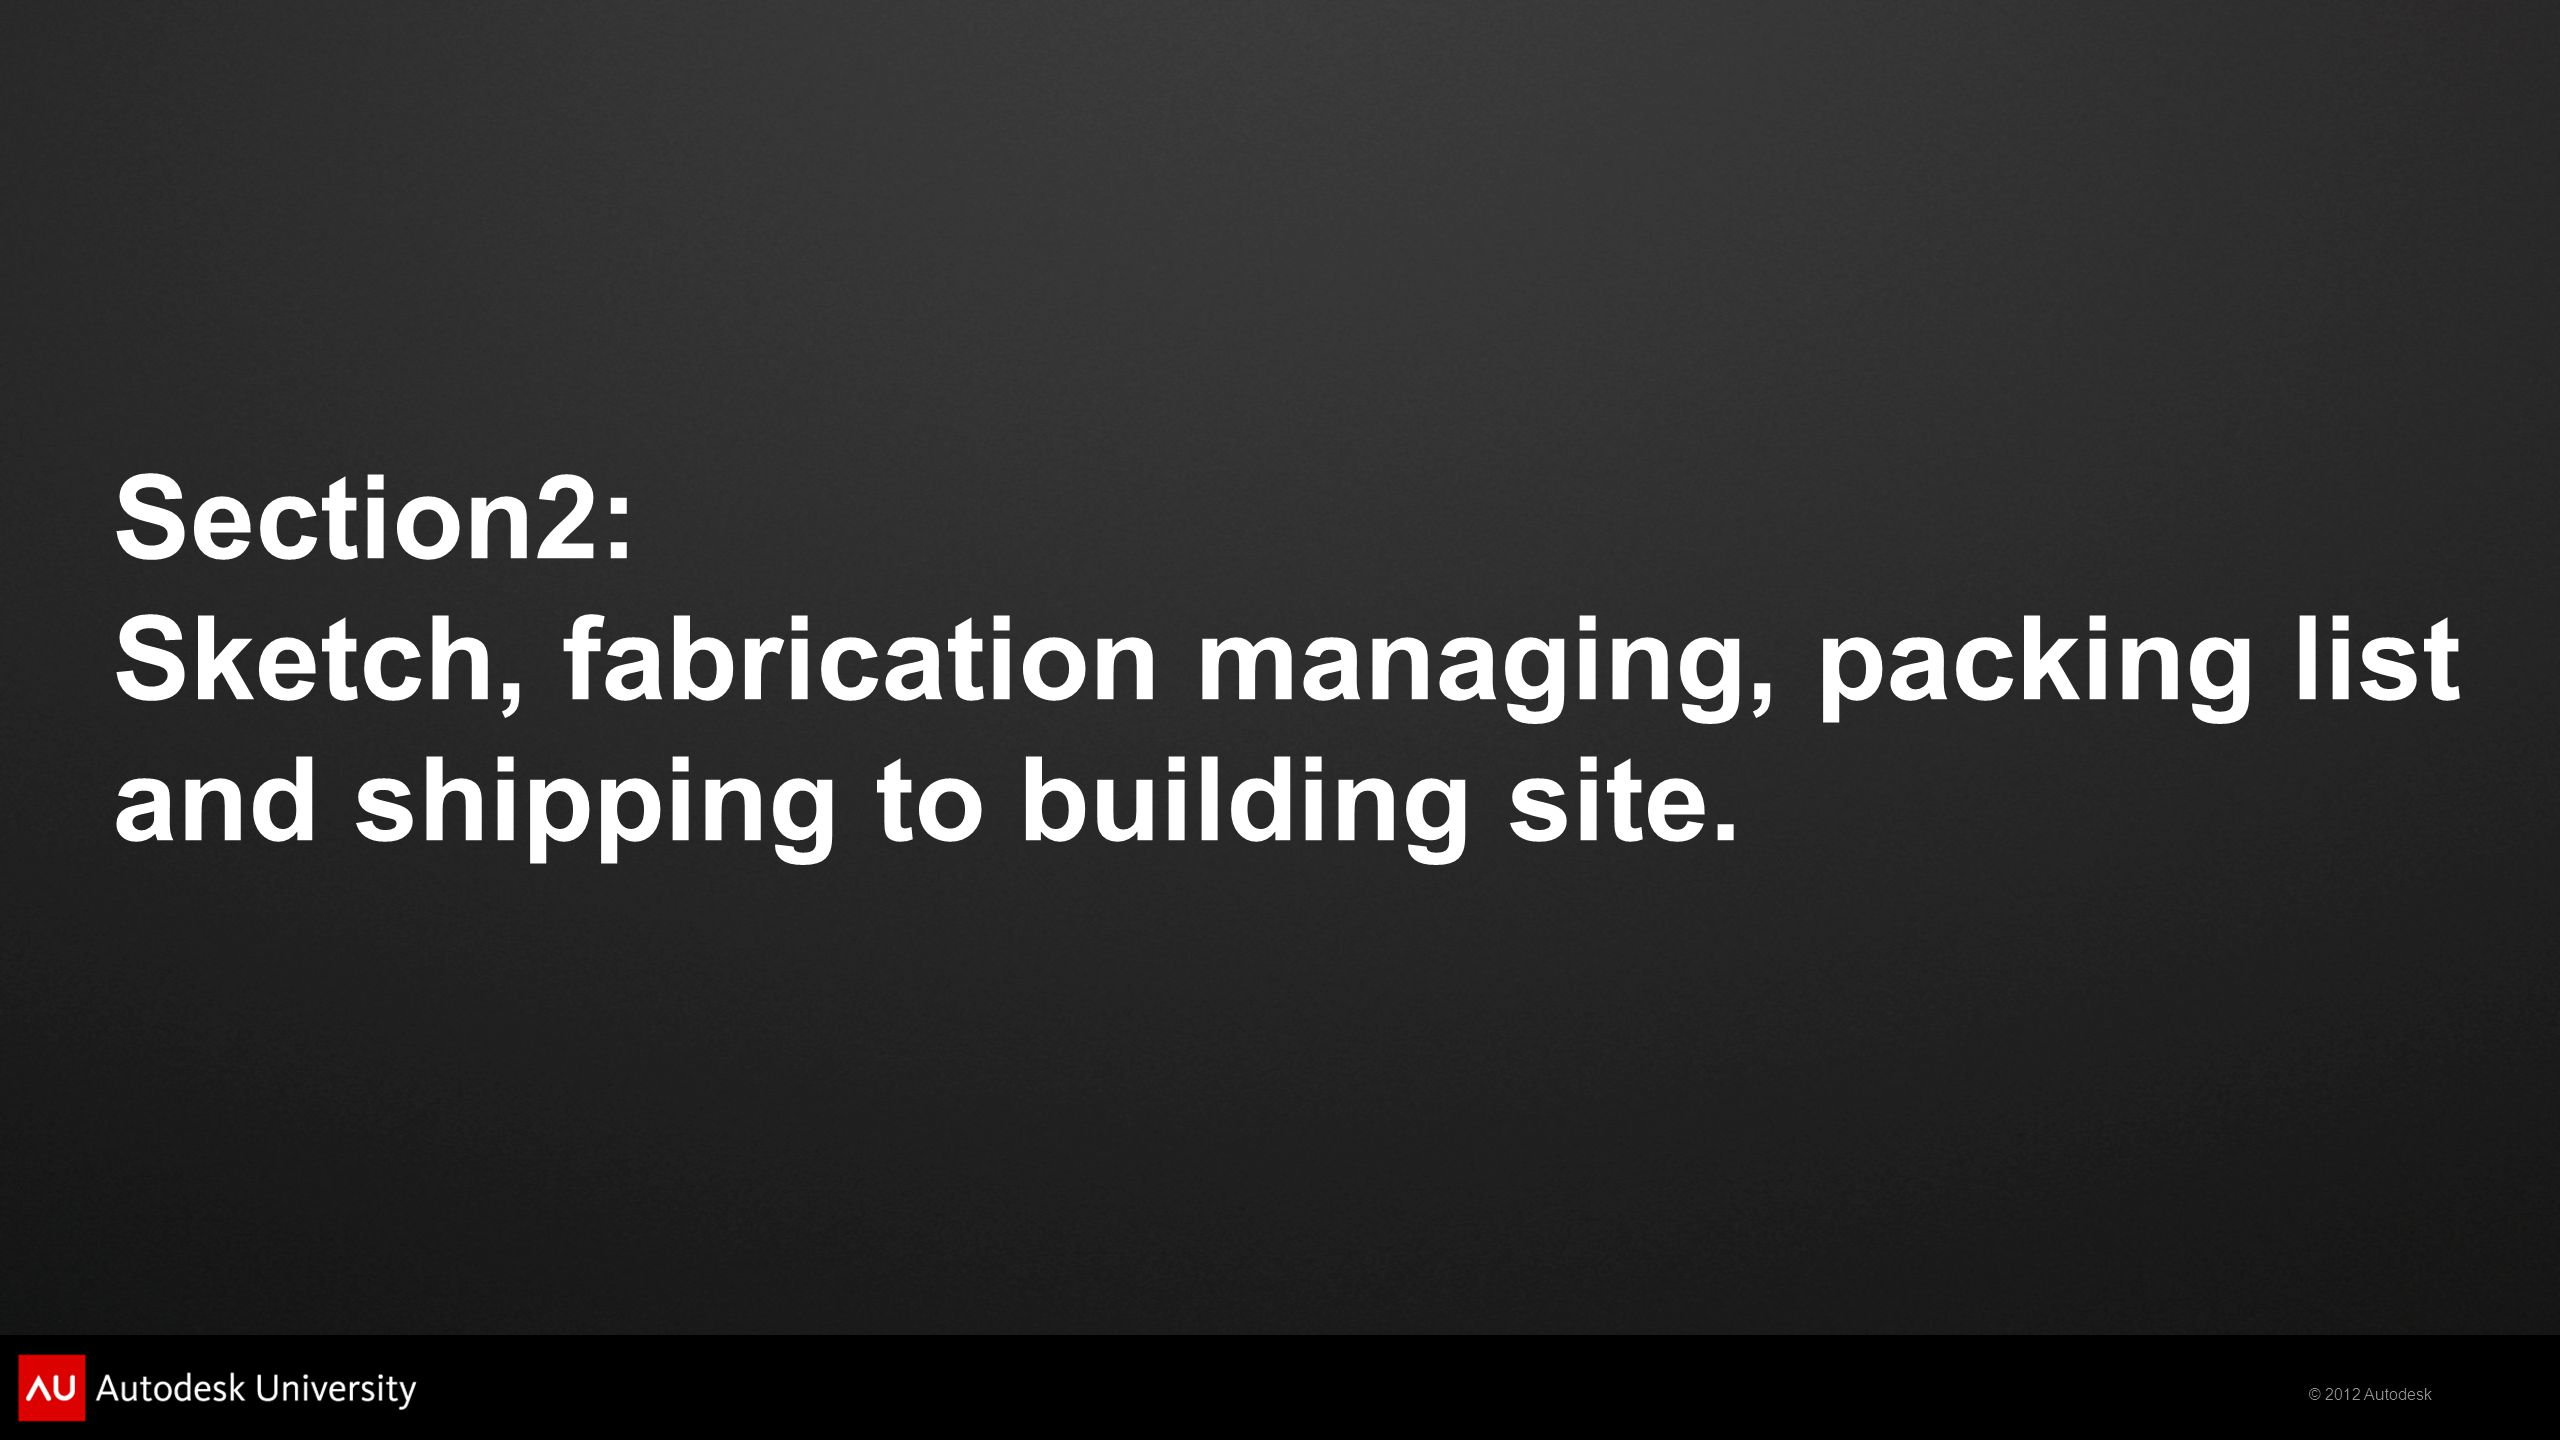 Section2: Sketch, fabrication managing, packing list and shipping to building site.